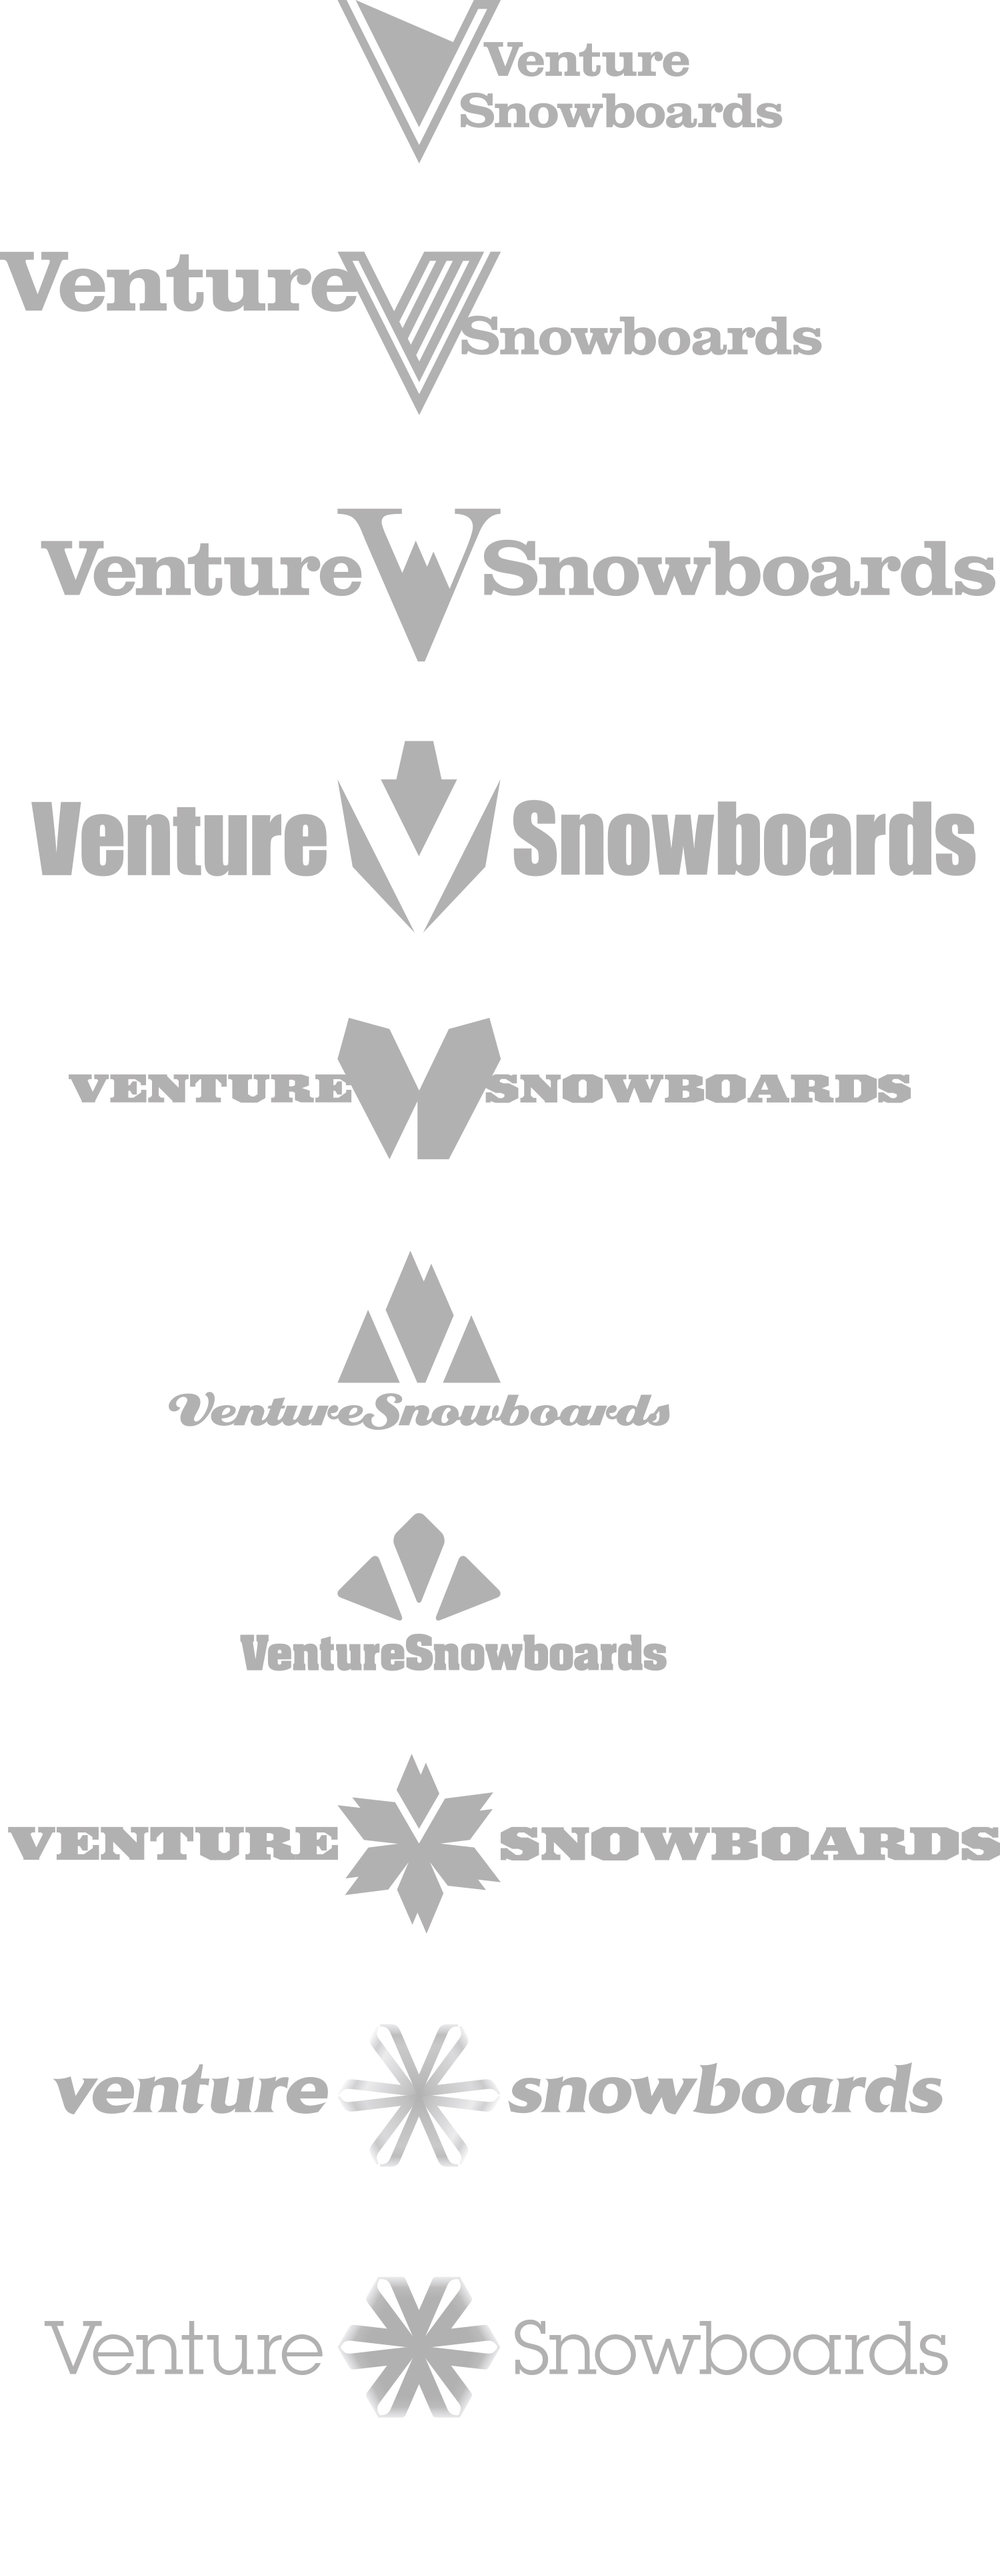 FEATURED WORK VENTURE SNOWBOARDS LOGO RESEARCH / DESIGN / DEVELOPMENT